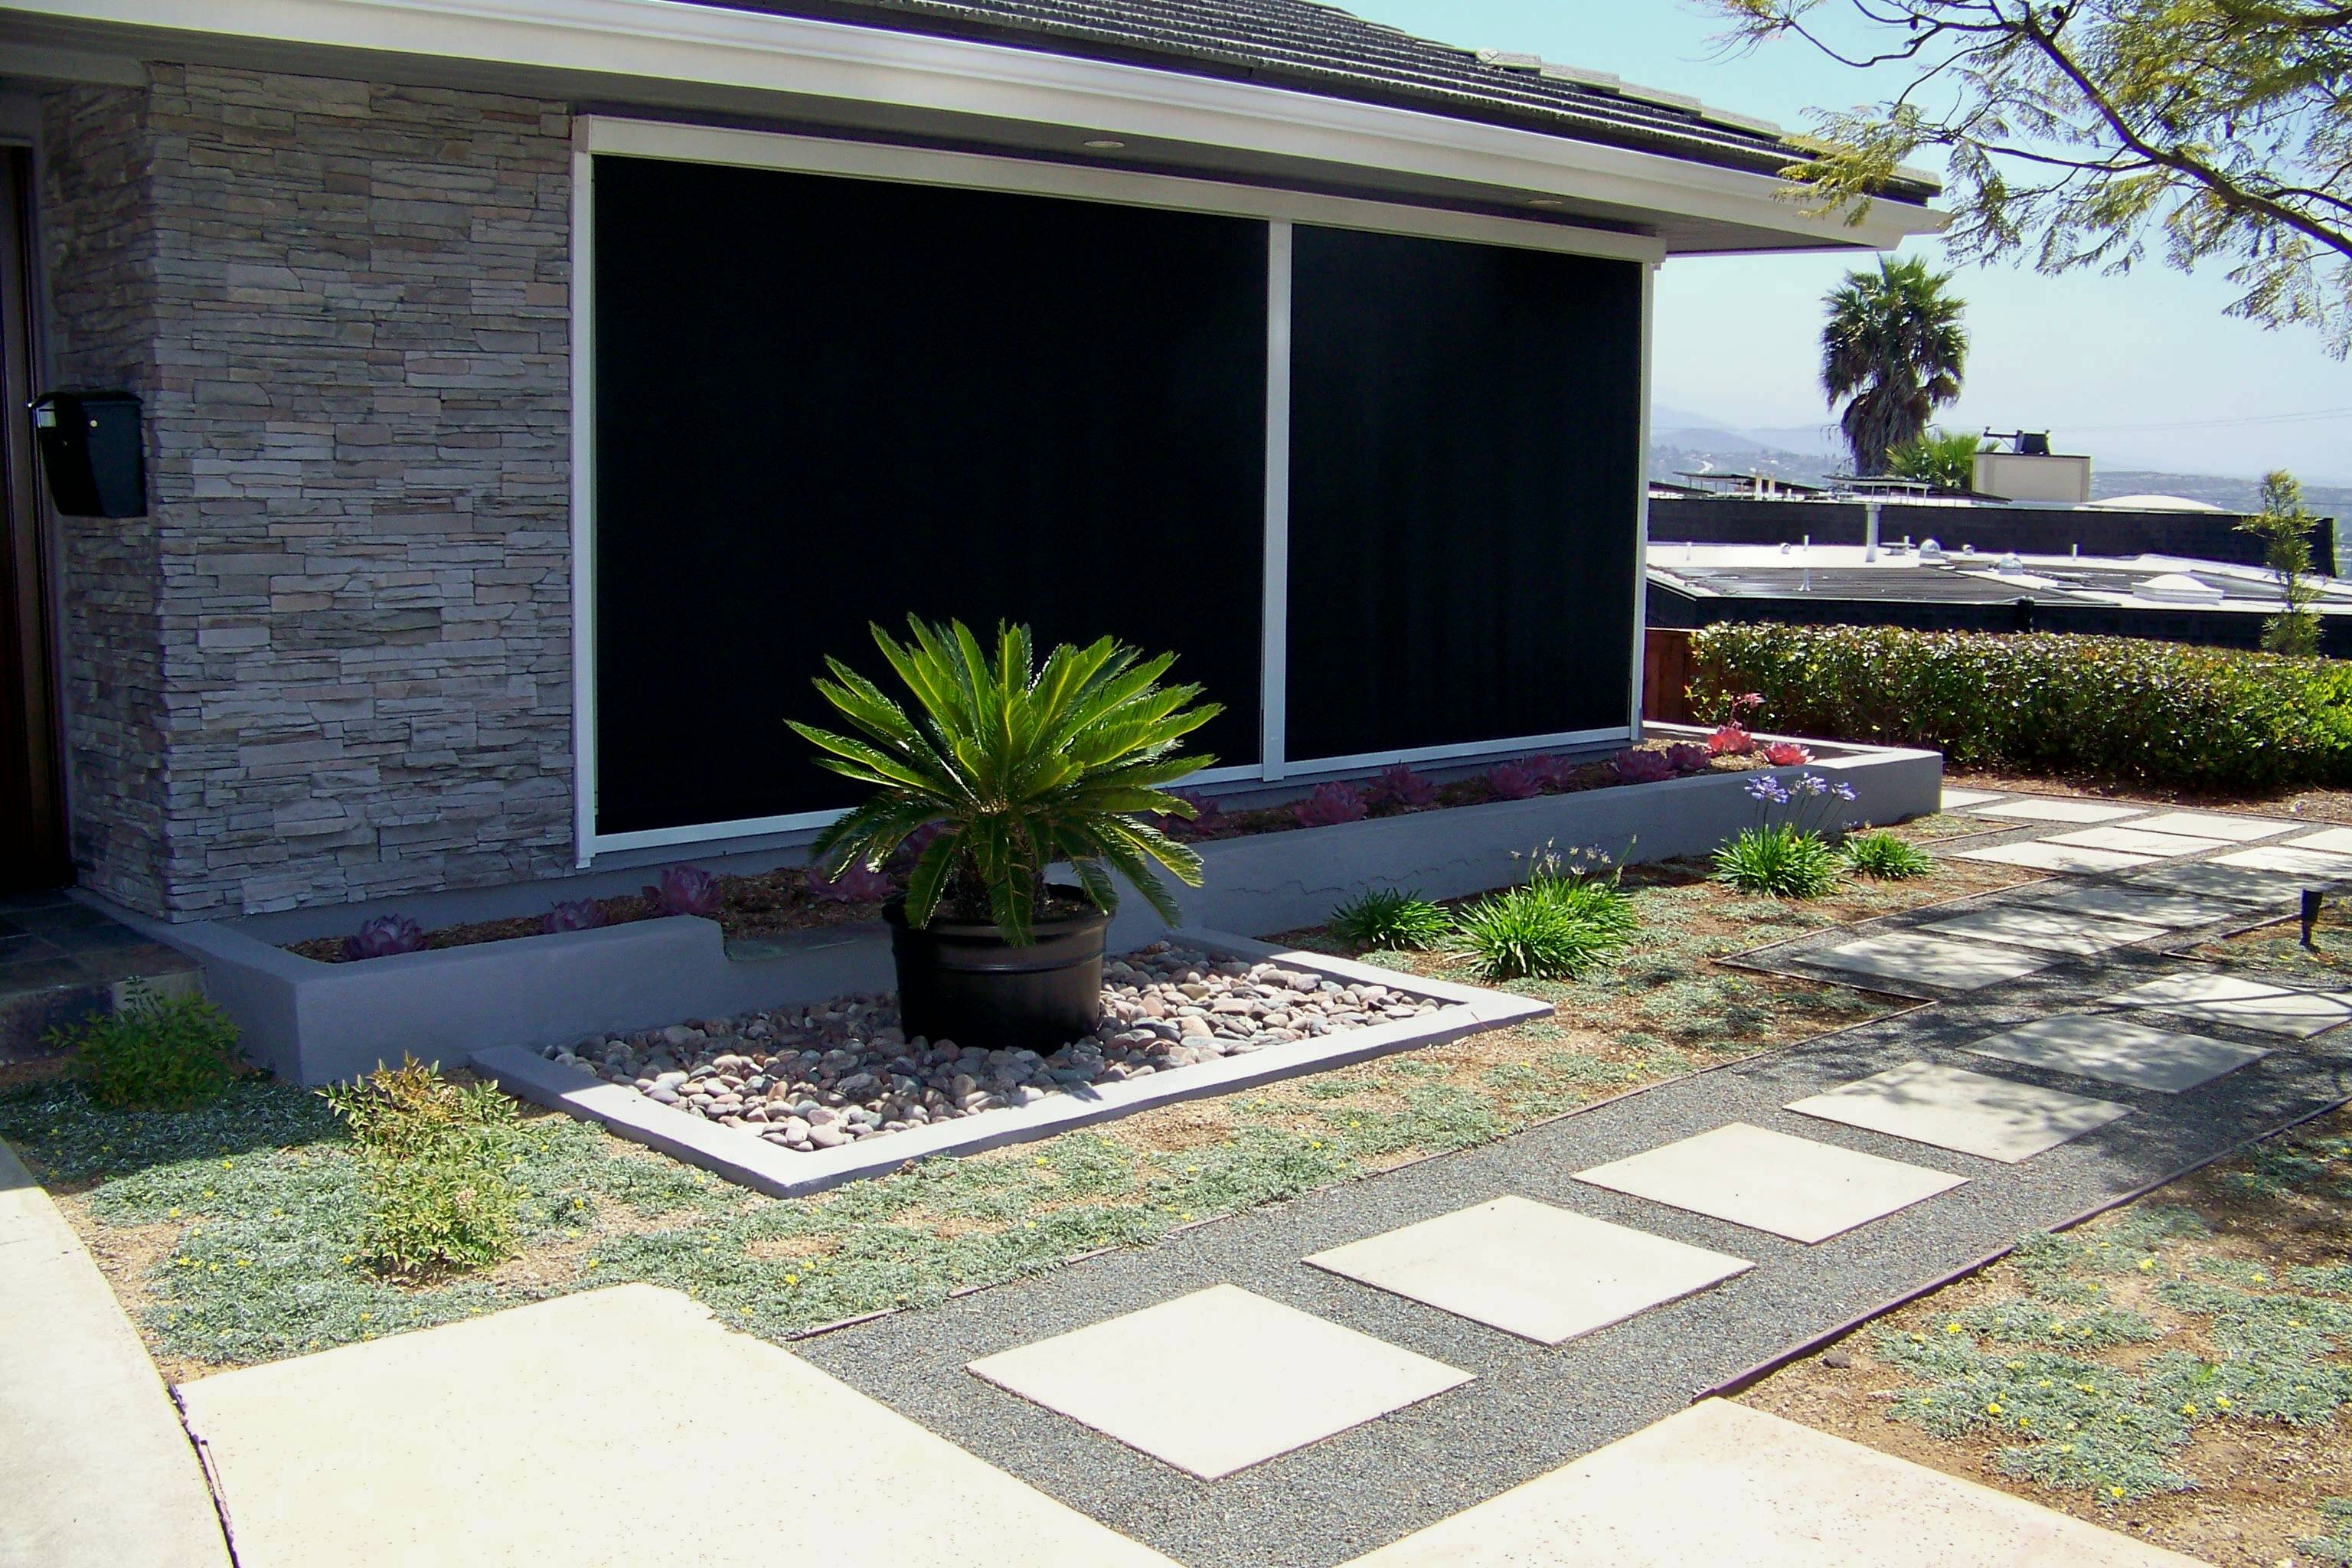 Backyard Design San Diego san diego landscaper western outdoor designbuild bbq island outdoor kitchens a barbeque 100_6556